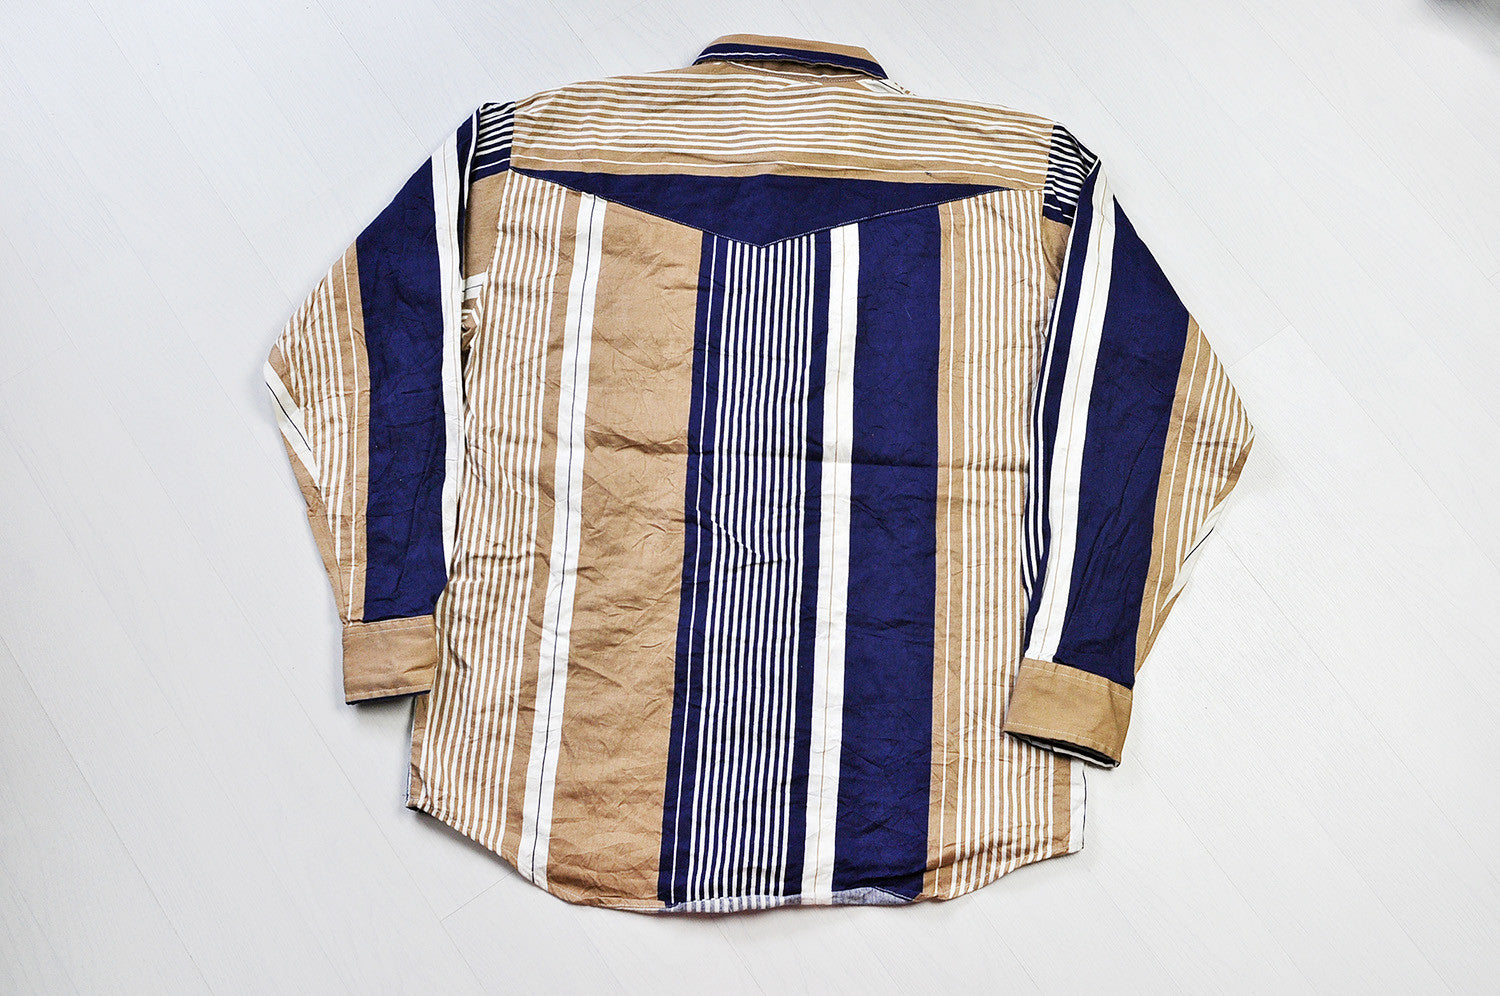 Vintage Western Patchwork Stripe Pattern Long Sleeve Button Up Oxford Shirt - Biege/Navy